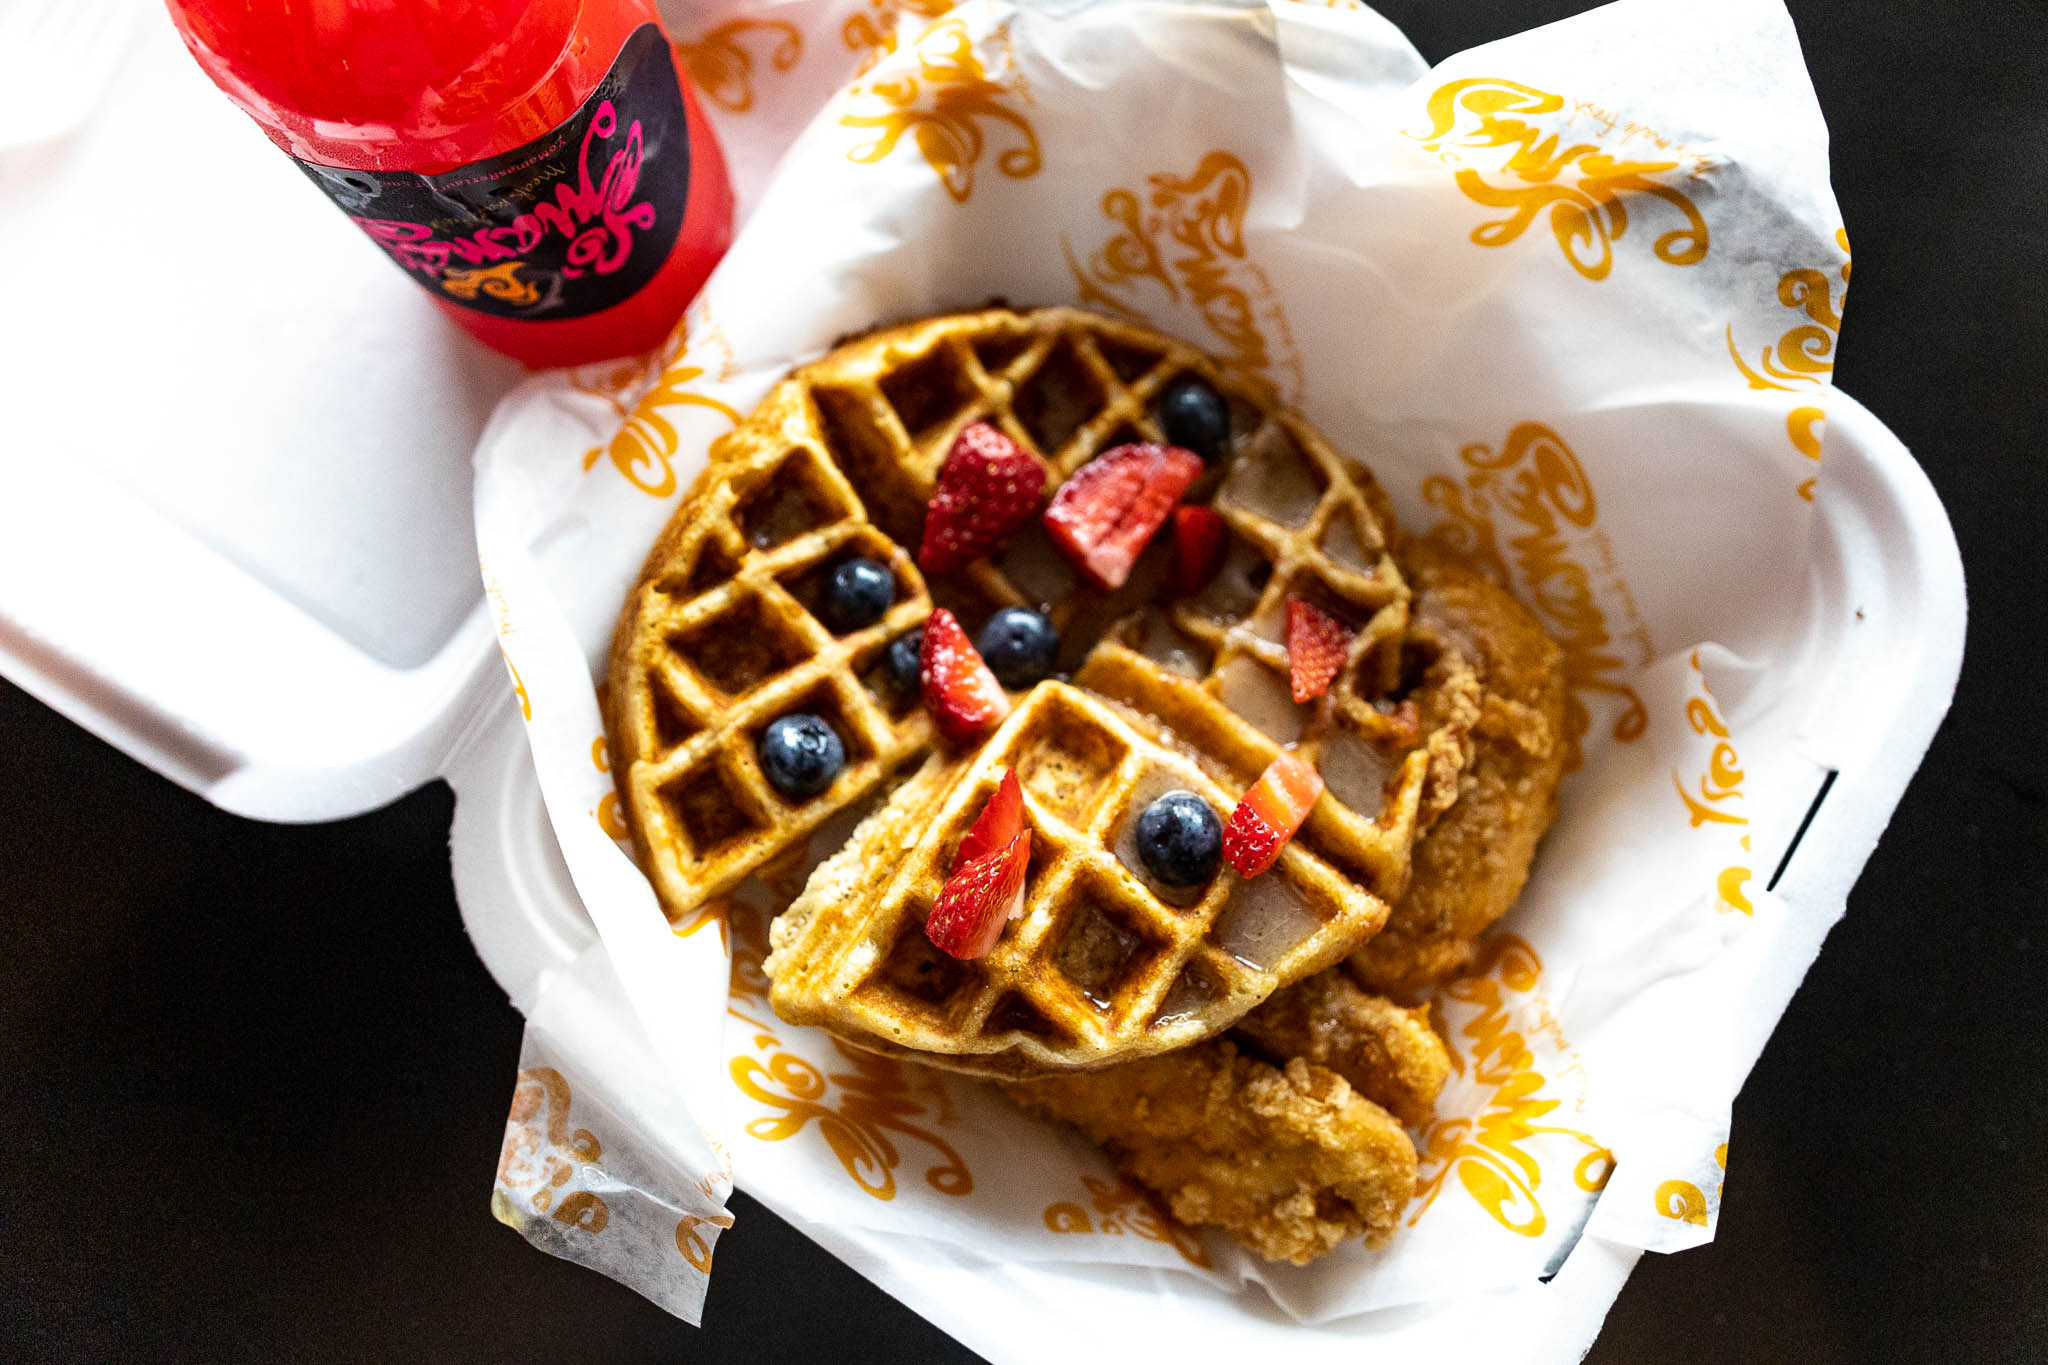 Celebrate National Waffle Week, Sep. 5-11, at 7 local spots